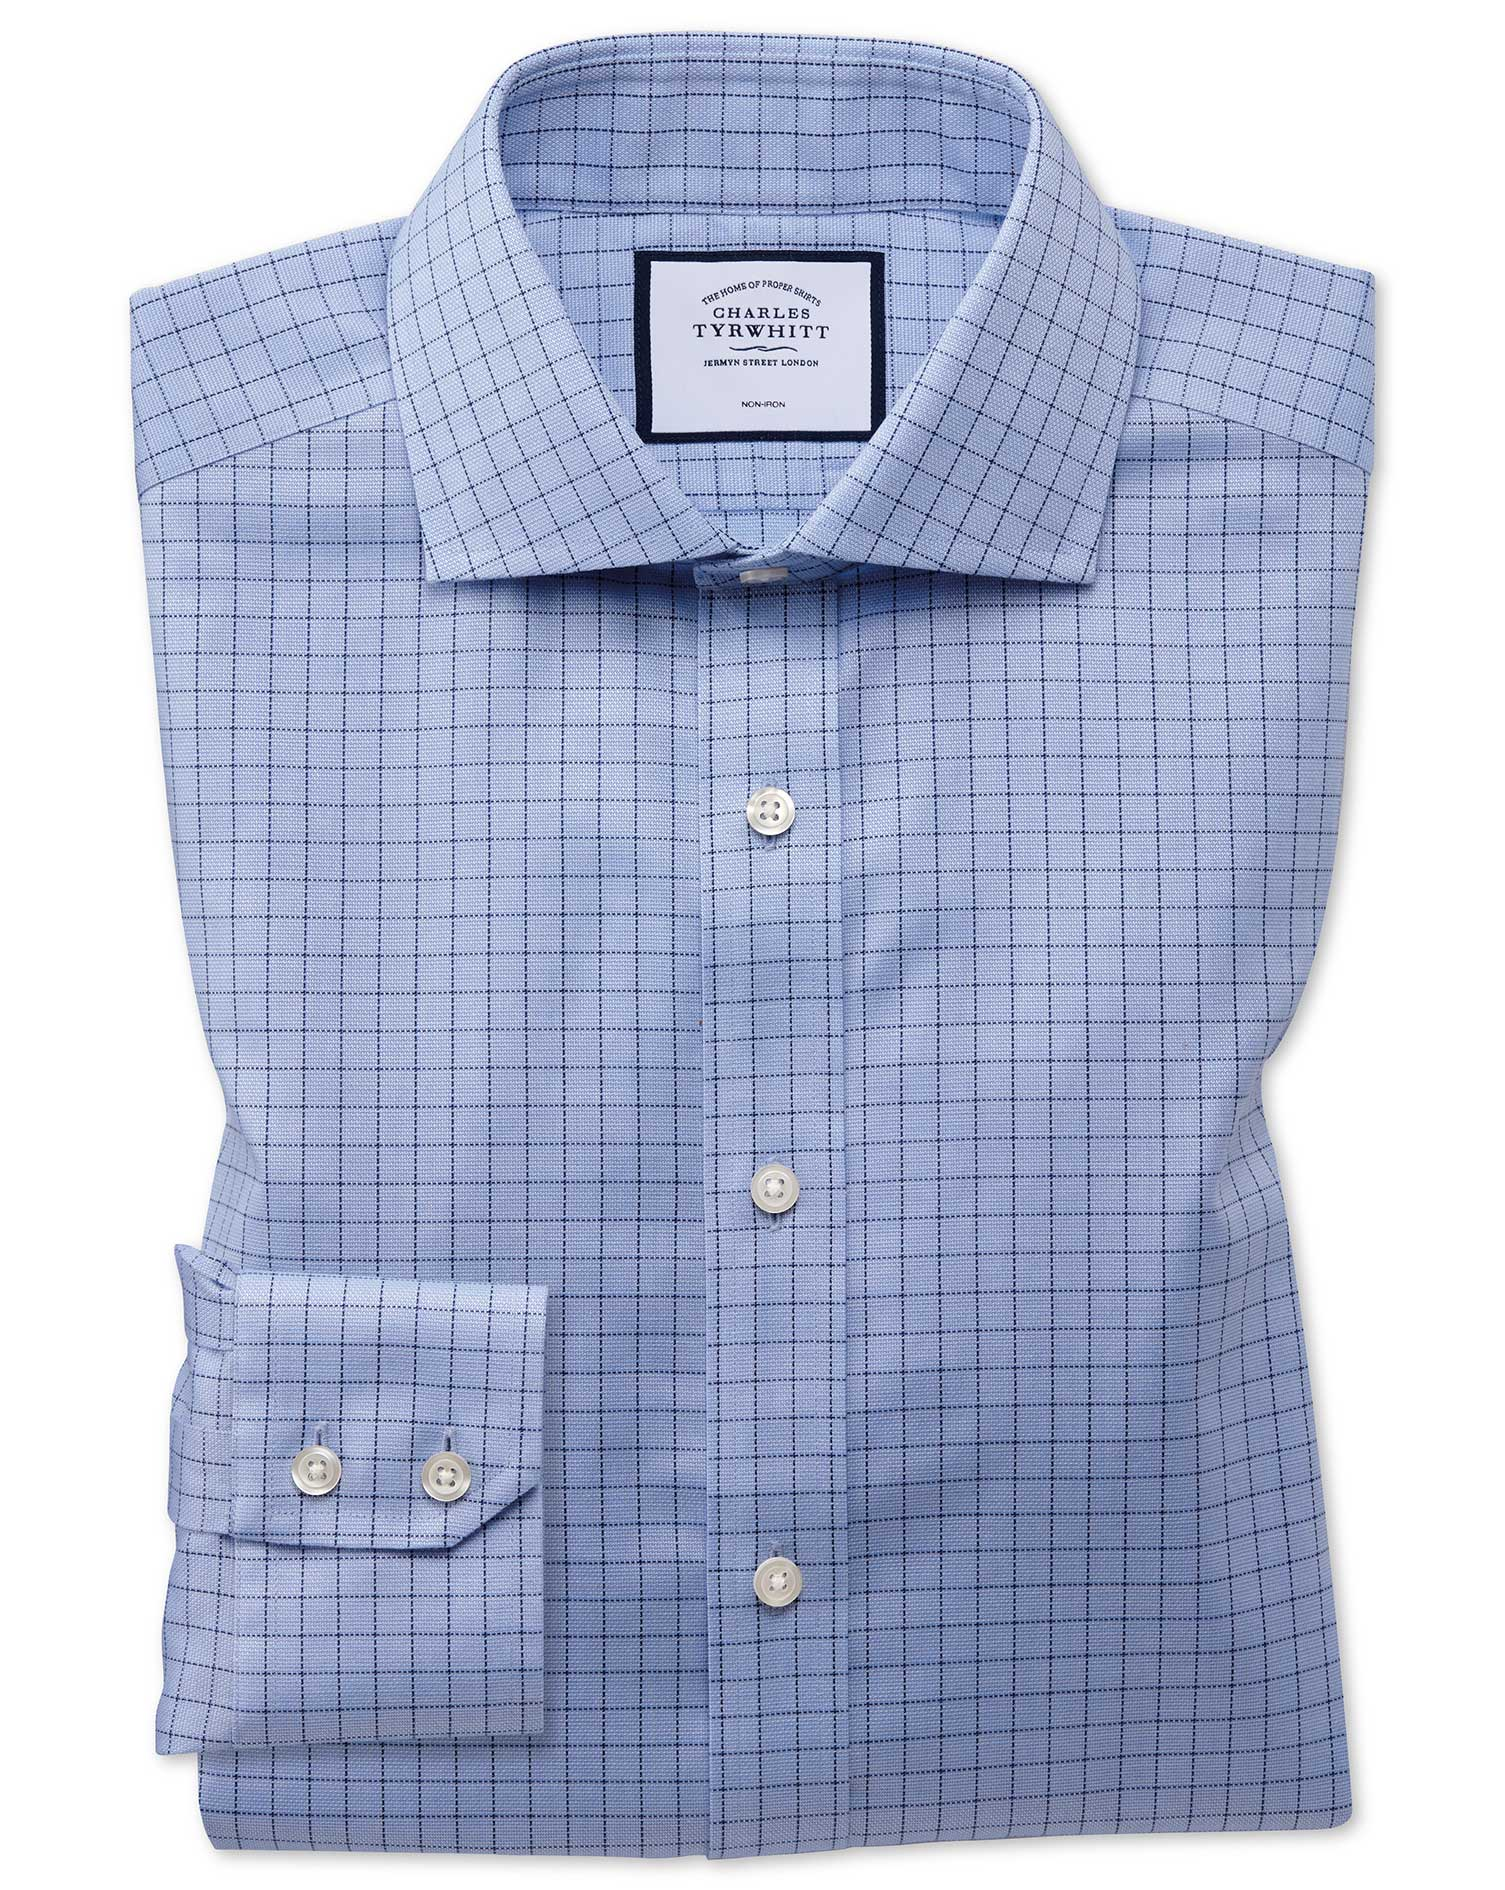 Slim Fit Non-Iron Cotton Stretch Oxford Grid Check Blue Formal Shirt Single Cuff Size 17/37 by Charl